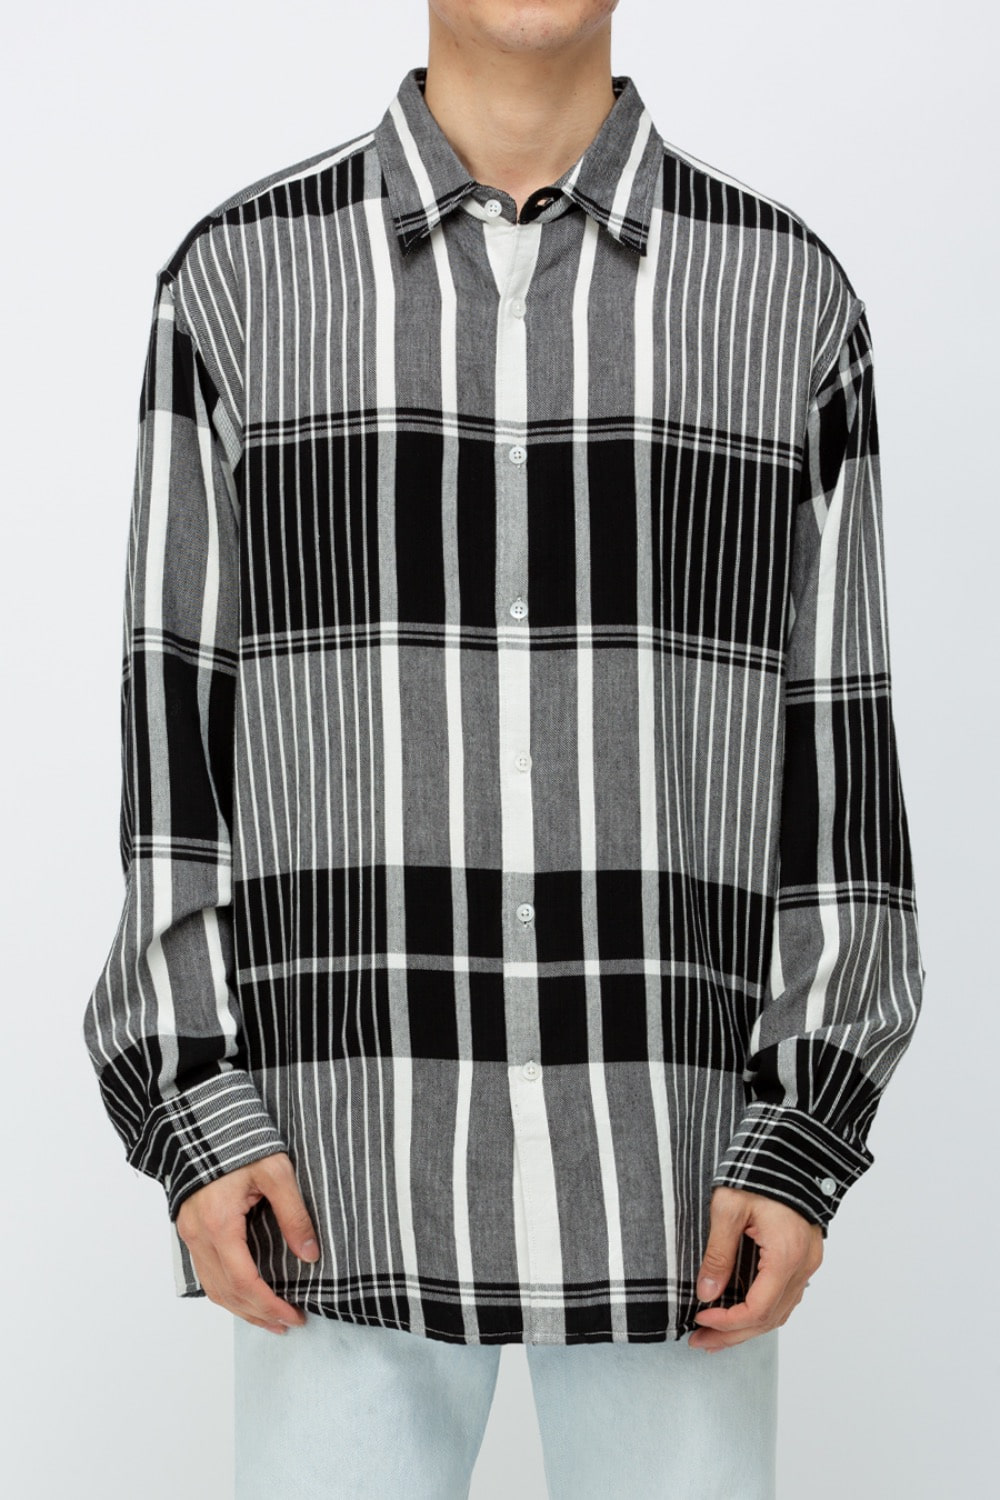 N PLAID SHIRT BLACK/WHITE